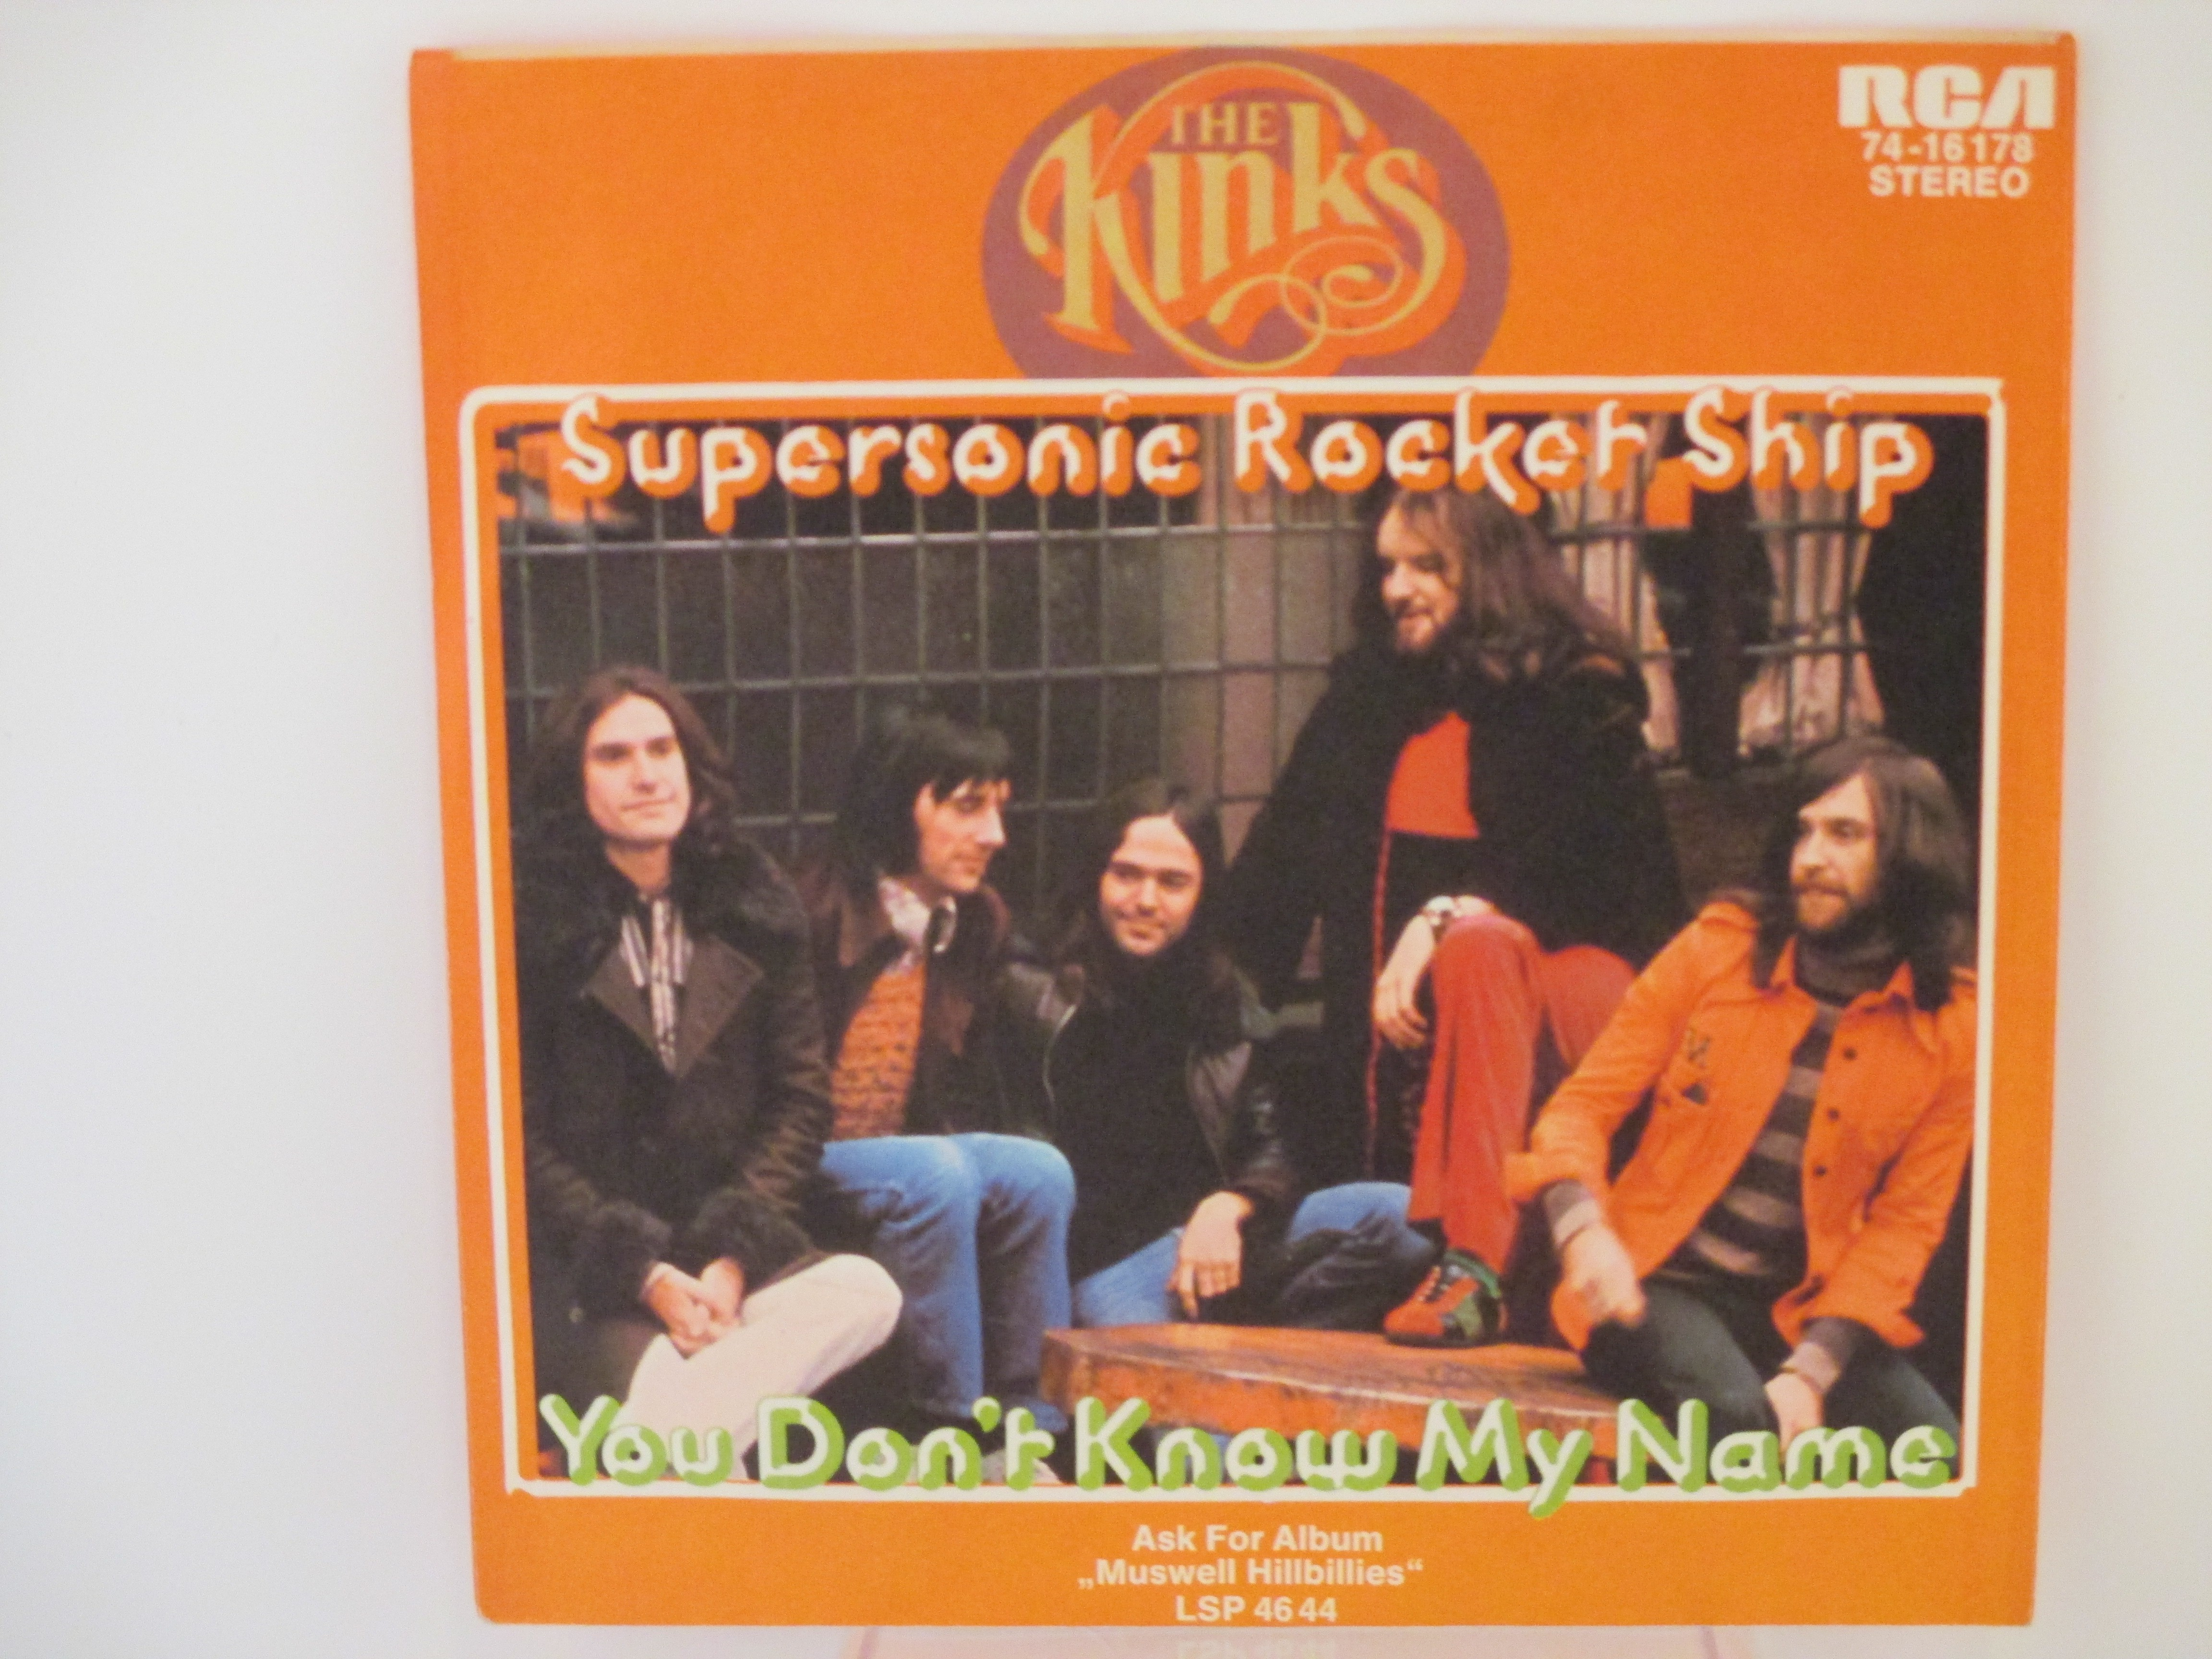 KINKS  Supersonic rocket ship / You don't know my name